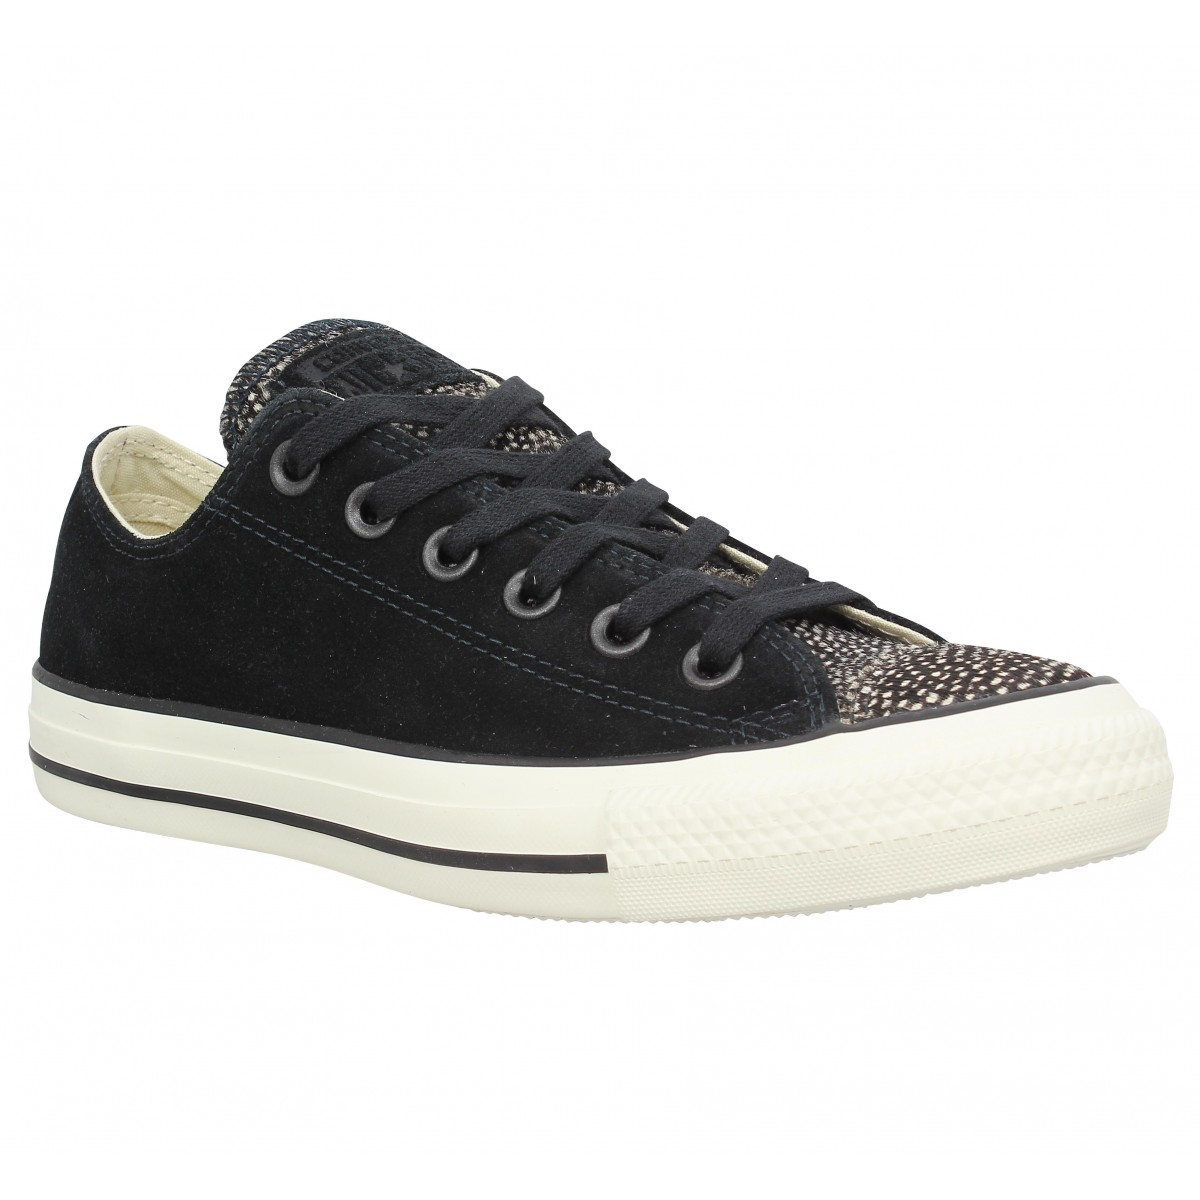 Baskets CONVERSE Chuck Taylor All Star velours Femme Noir